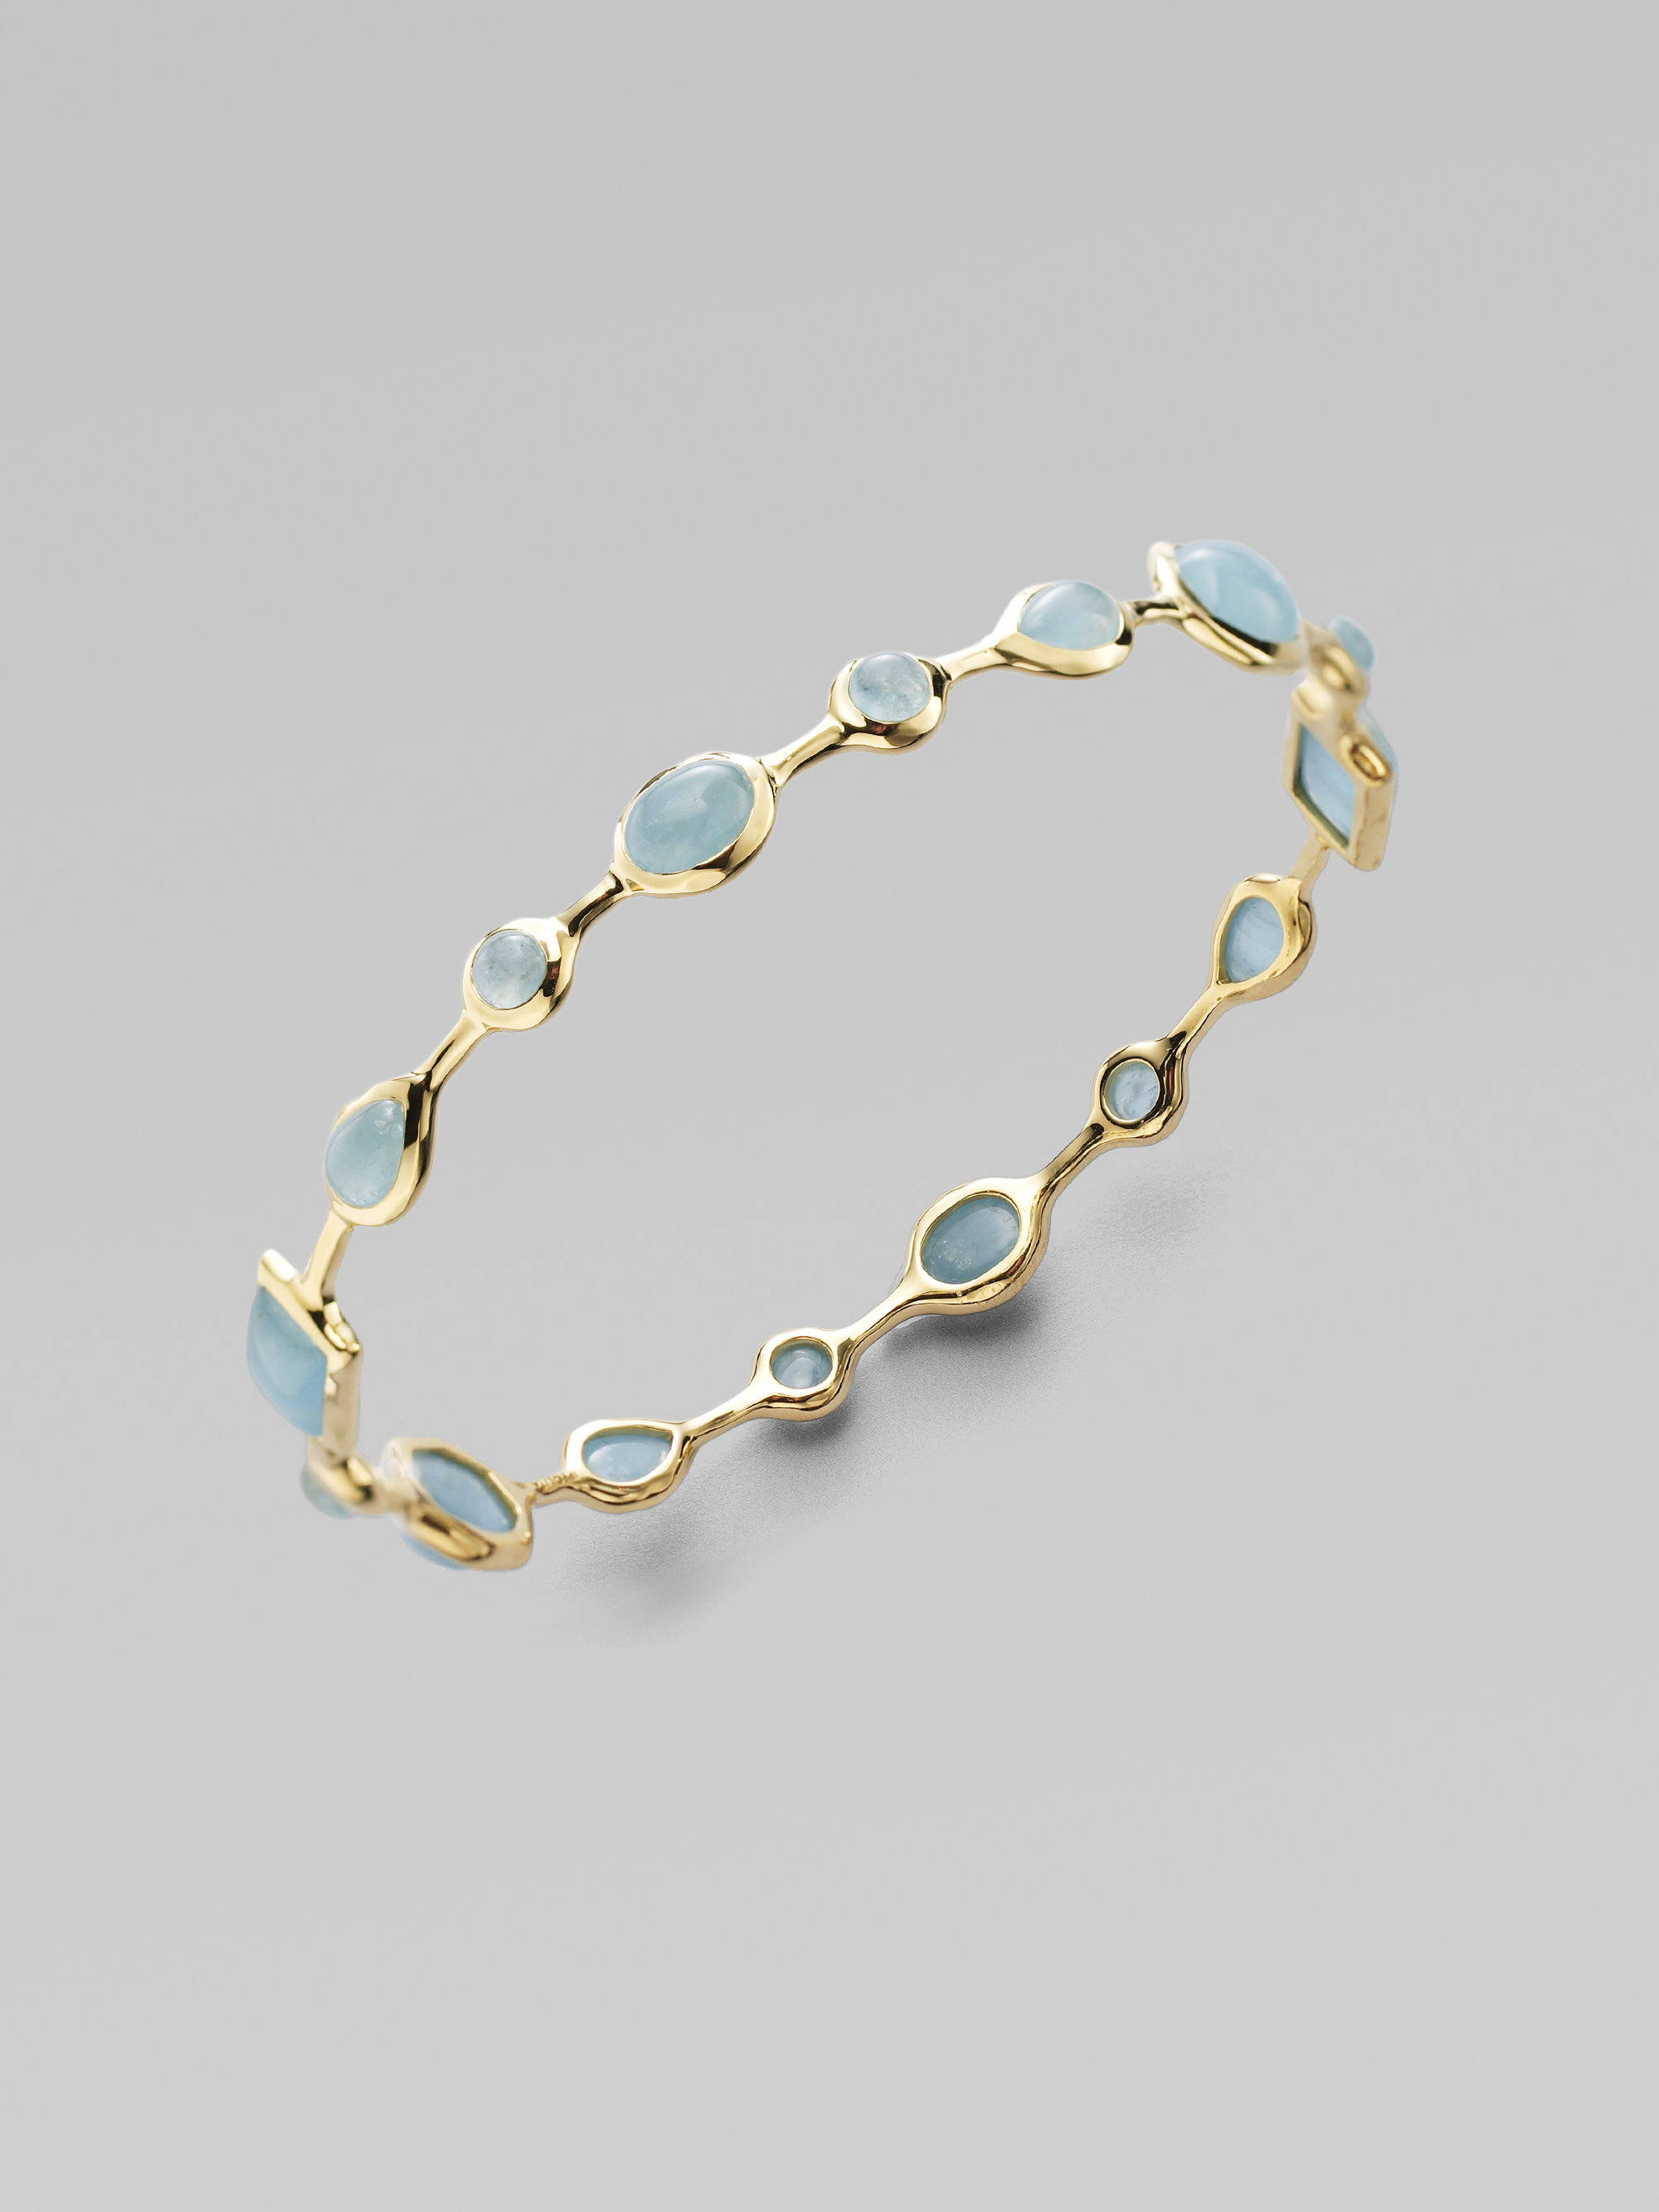 aquamarine for labradorite by product los collection bracelet page and s gift luxury d stacking london angeles ommo women idea